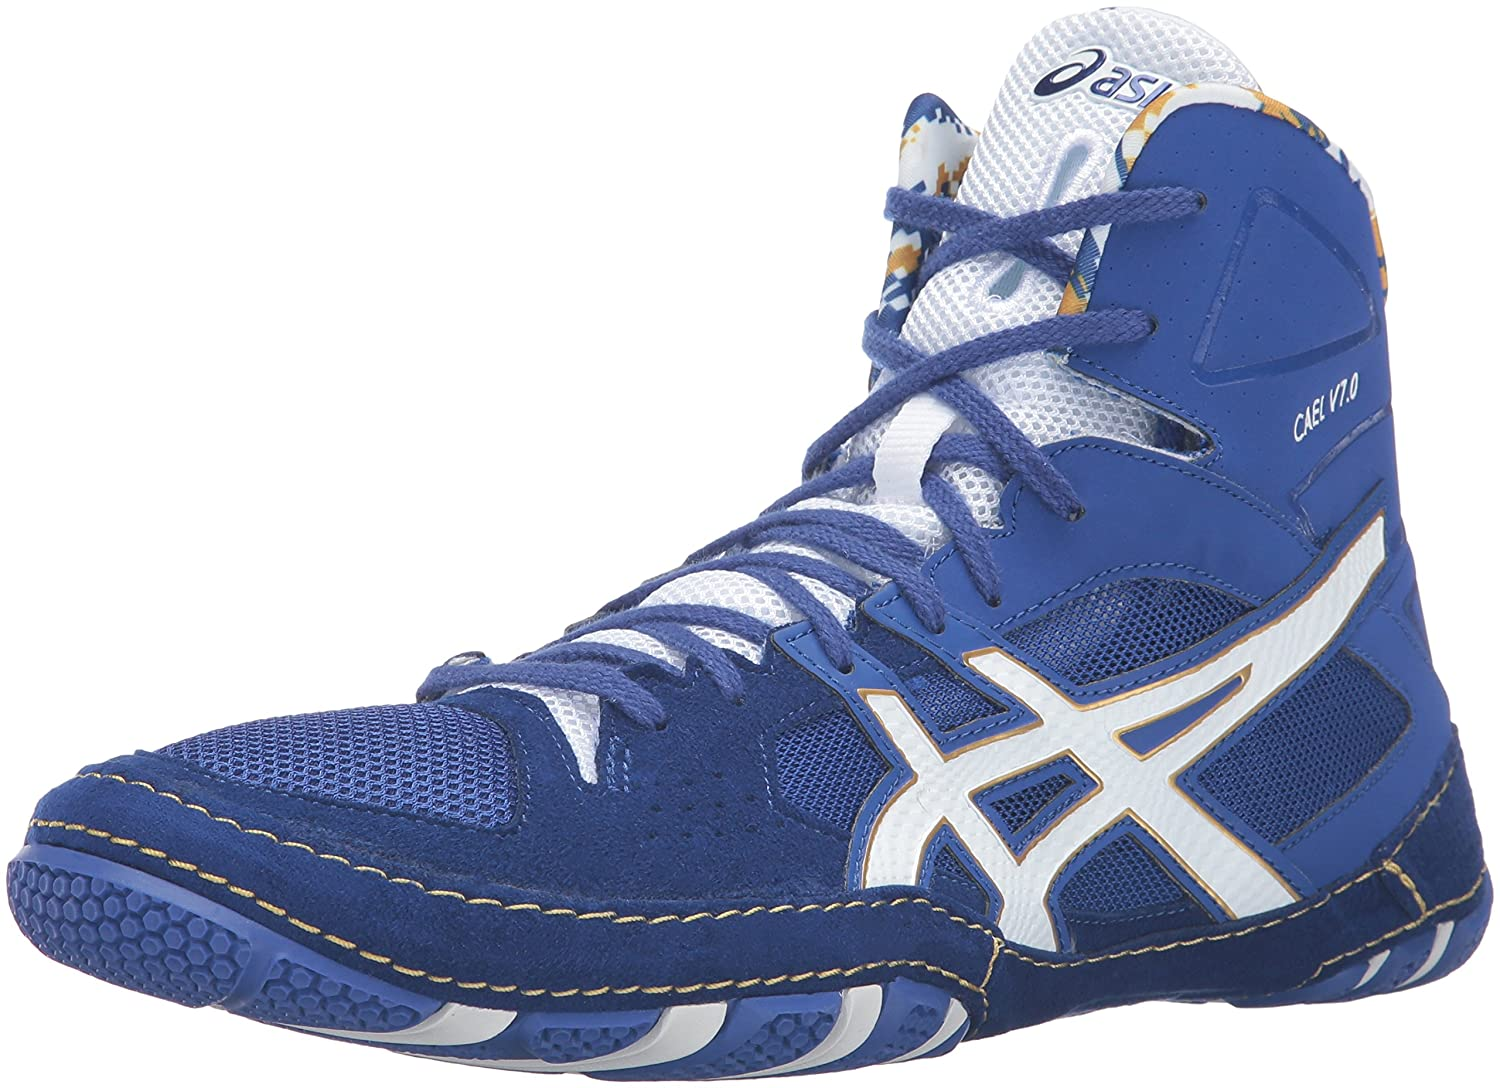 ASICS Men's Cael V7.0 Wrestling Shoe ASICS America Corporation Cael V7.0-M